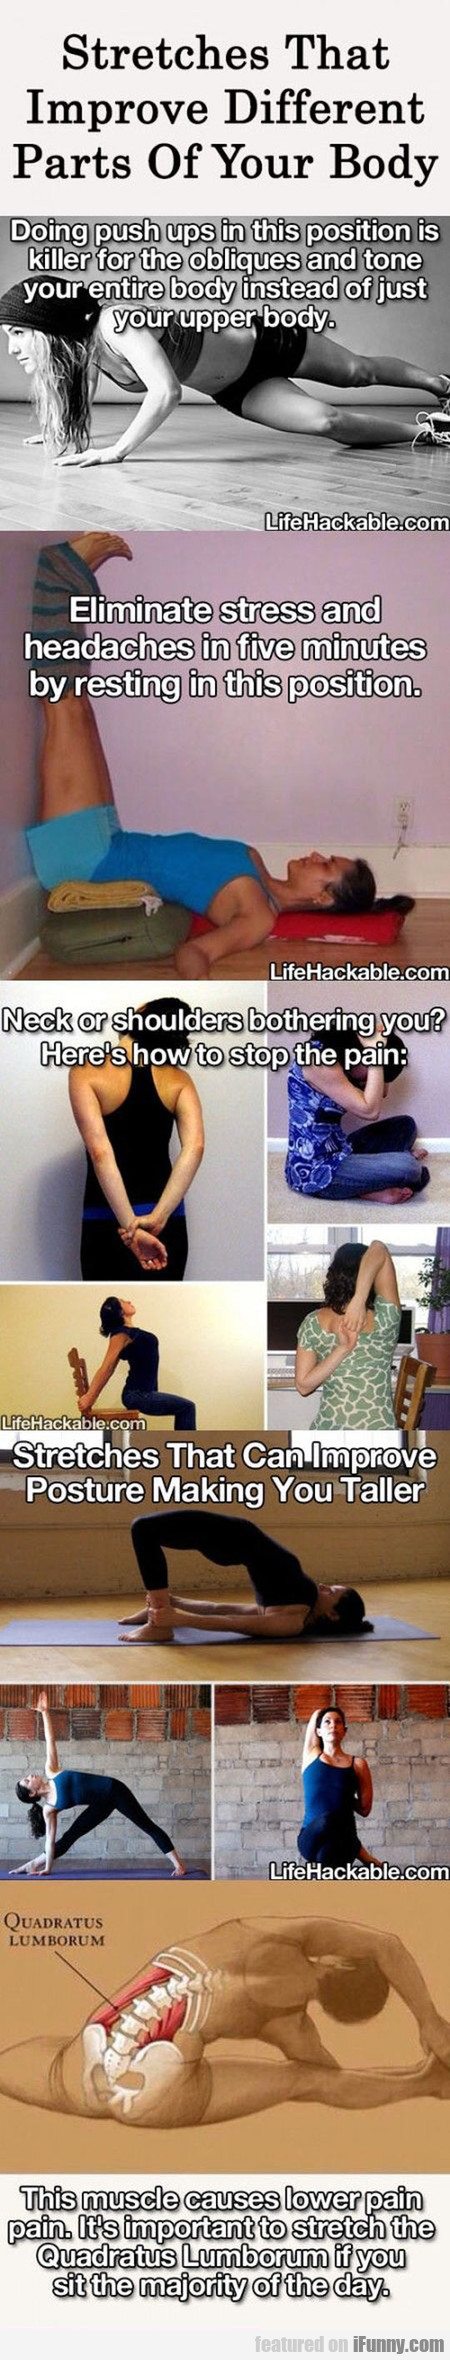 Stretches That Improve Different Parts Of Your Bod